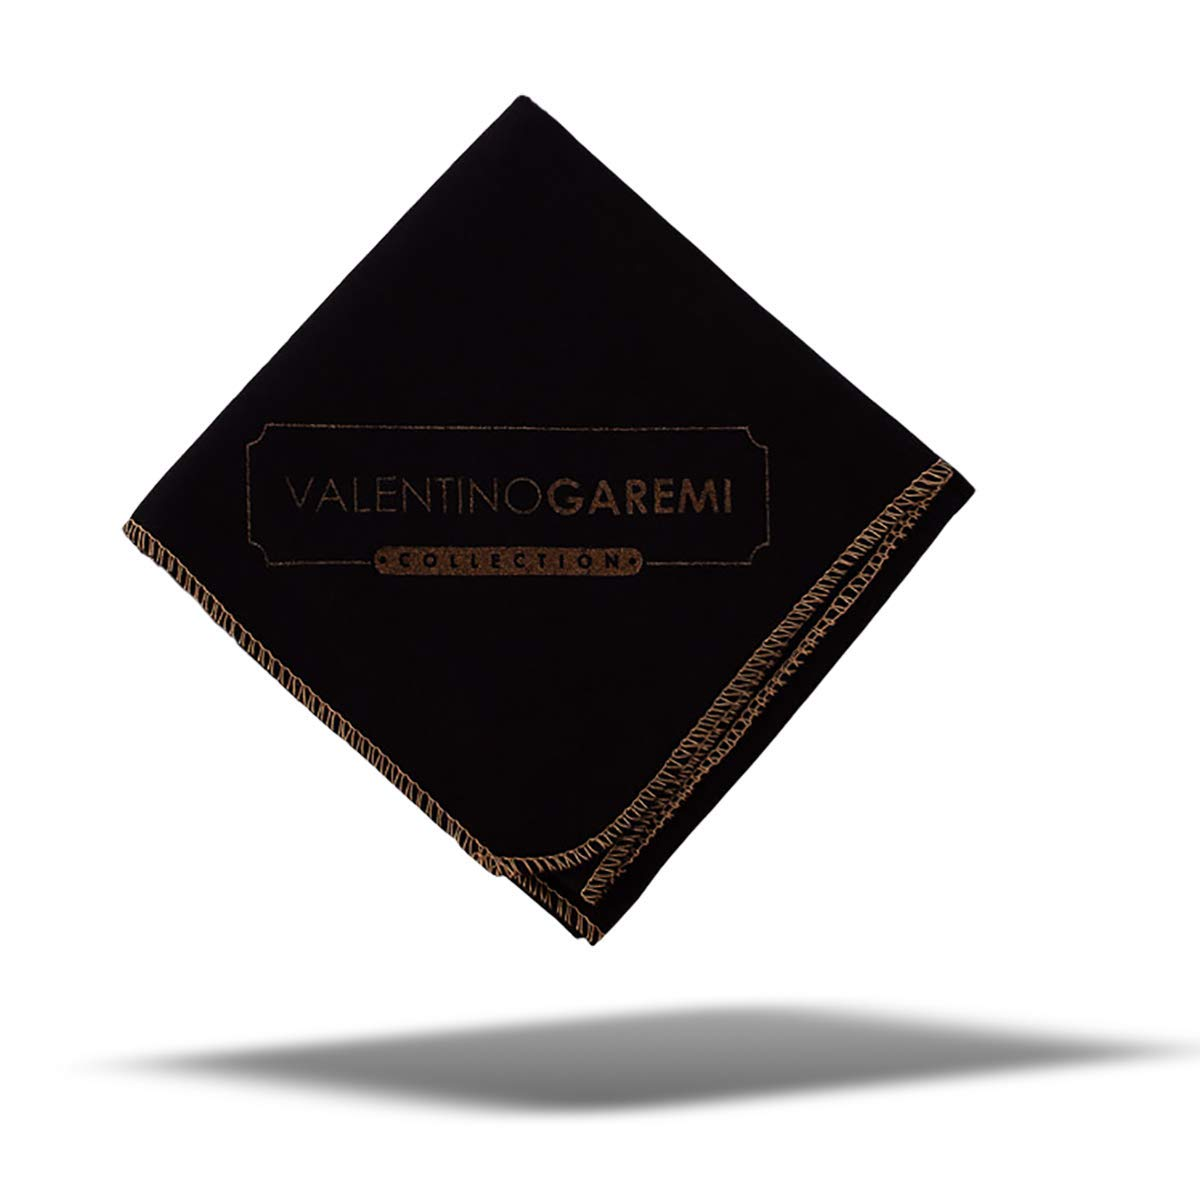 Valentino Garemi Polish Buff Cleaning Cloth – Black Edition Superior Cotton Fabric for Leather Shoes, Furniture, Musical Instrument, Car Seats, High End Garments, Wallet Purse Bags Cloth Jacket Cell